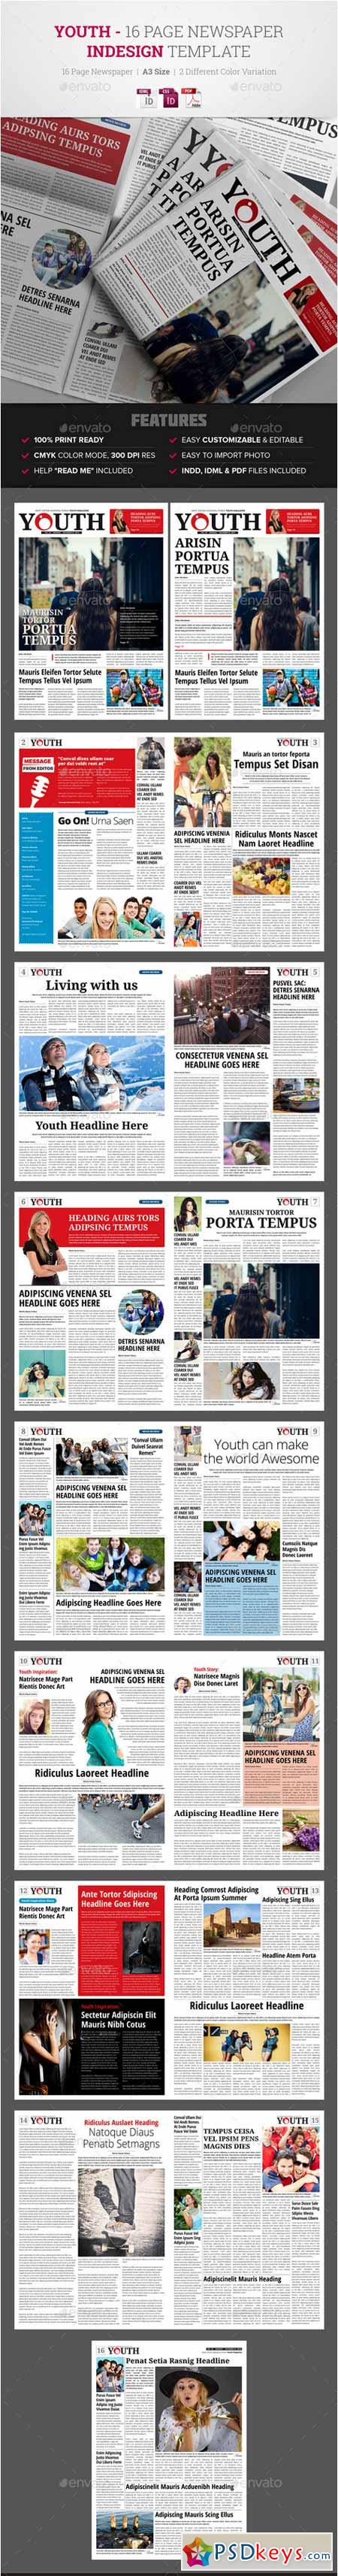 Youth - 16 Page Newspaper Indesign Template 12173192